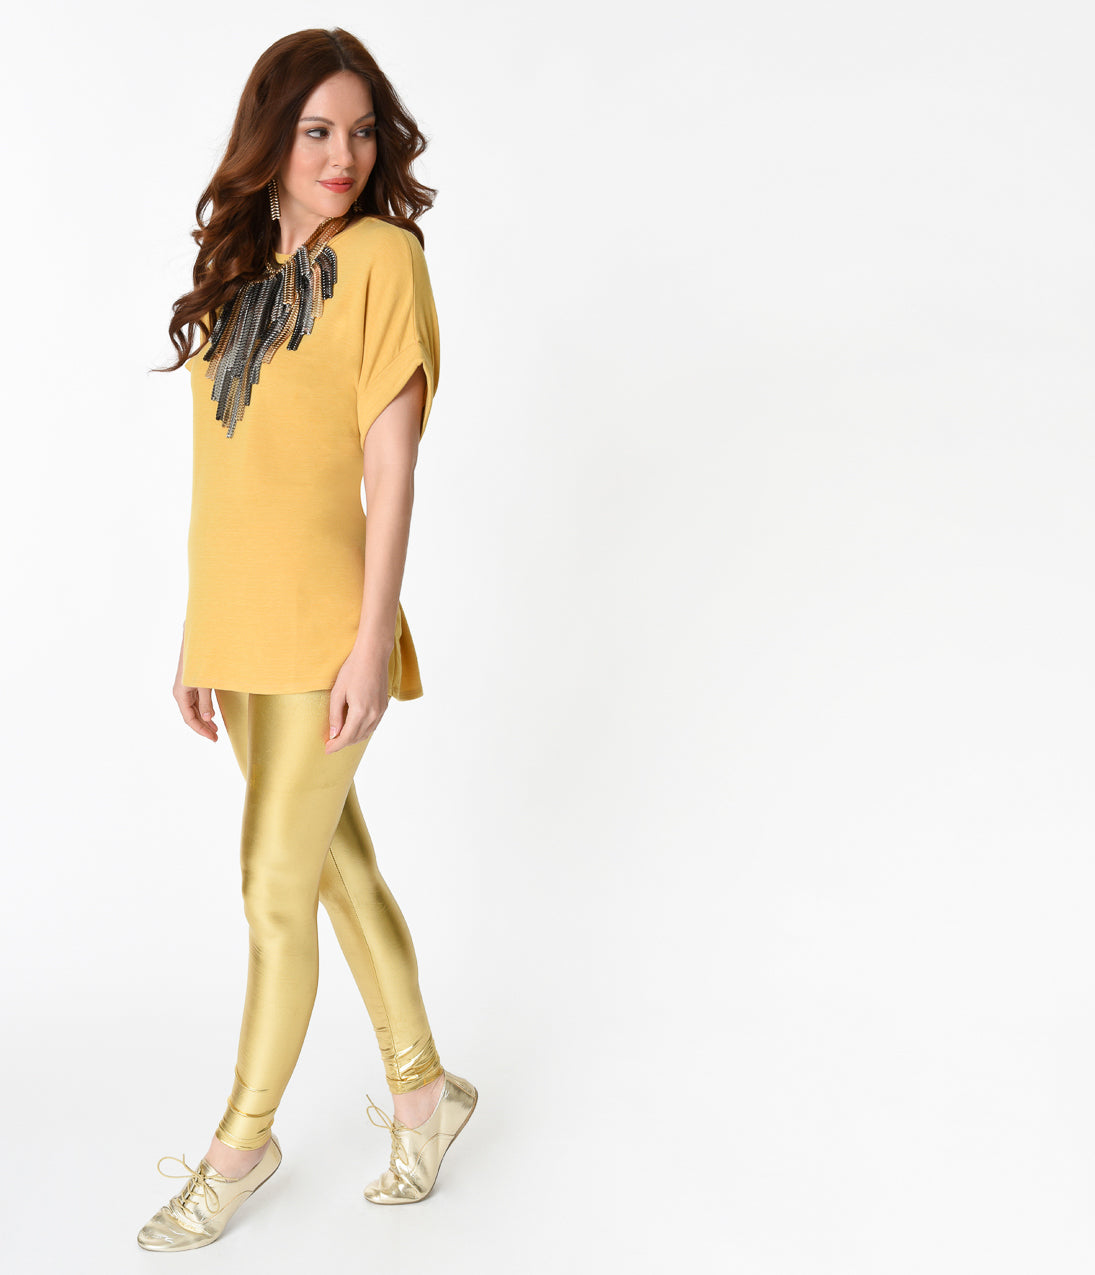 60s Shirts, T-shirt, Blouses | 70s Shirts, Tops, Vests Retro Style Mustard Gold Short Sleeve Stretch Tunic Tie Top $23.00 AT vintagedancer.com